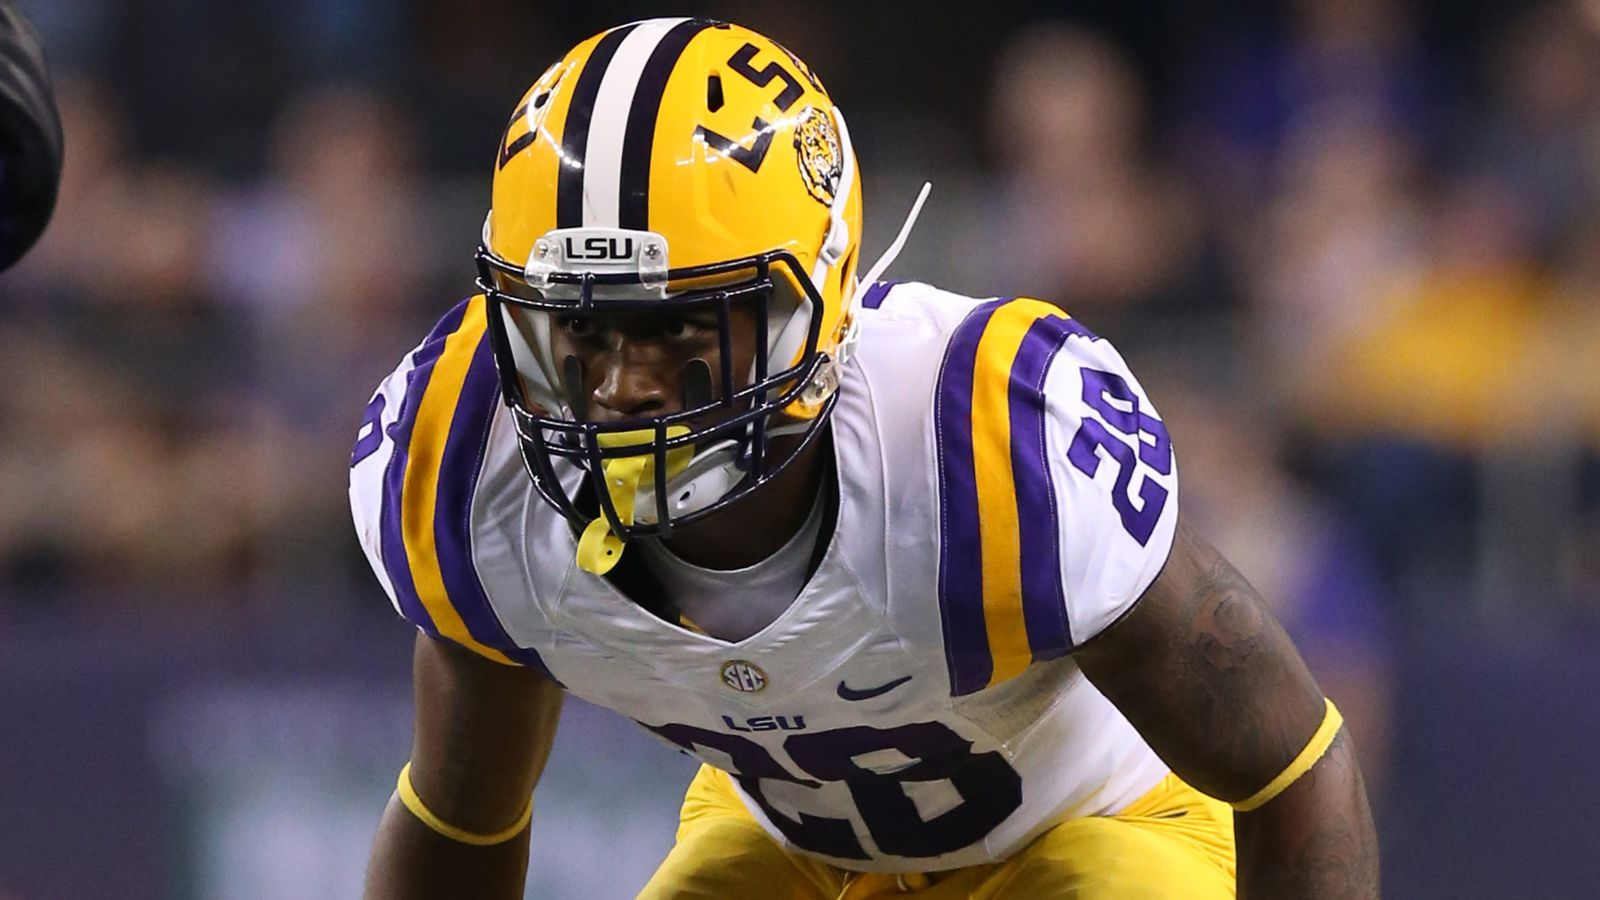 LSU safety Jalen Mills arrested, accused of punching woman ...